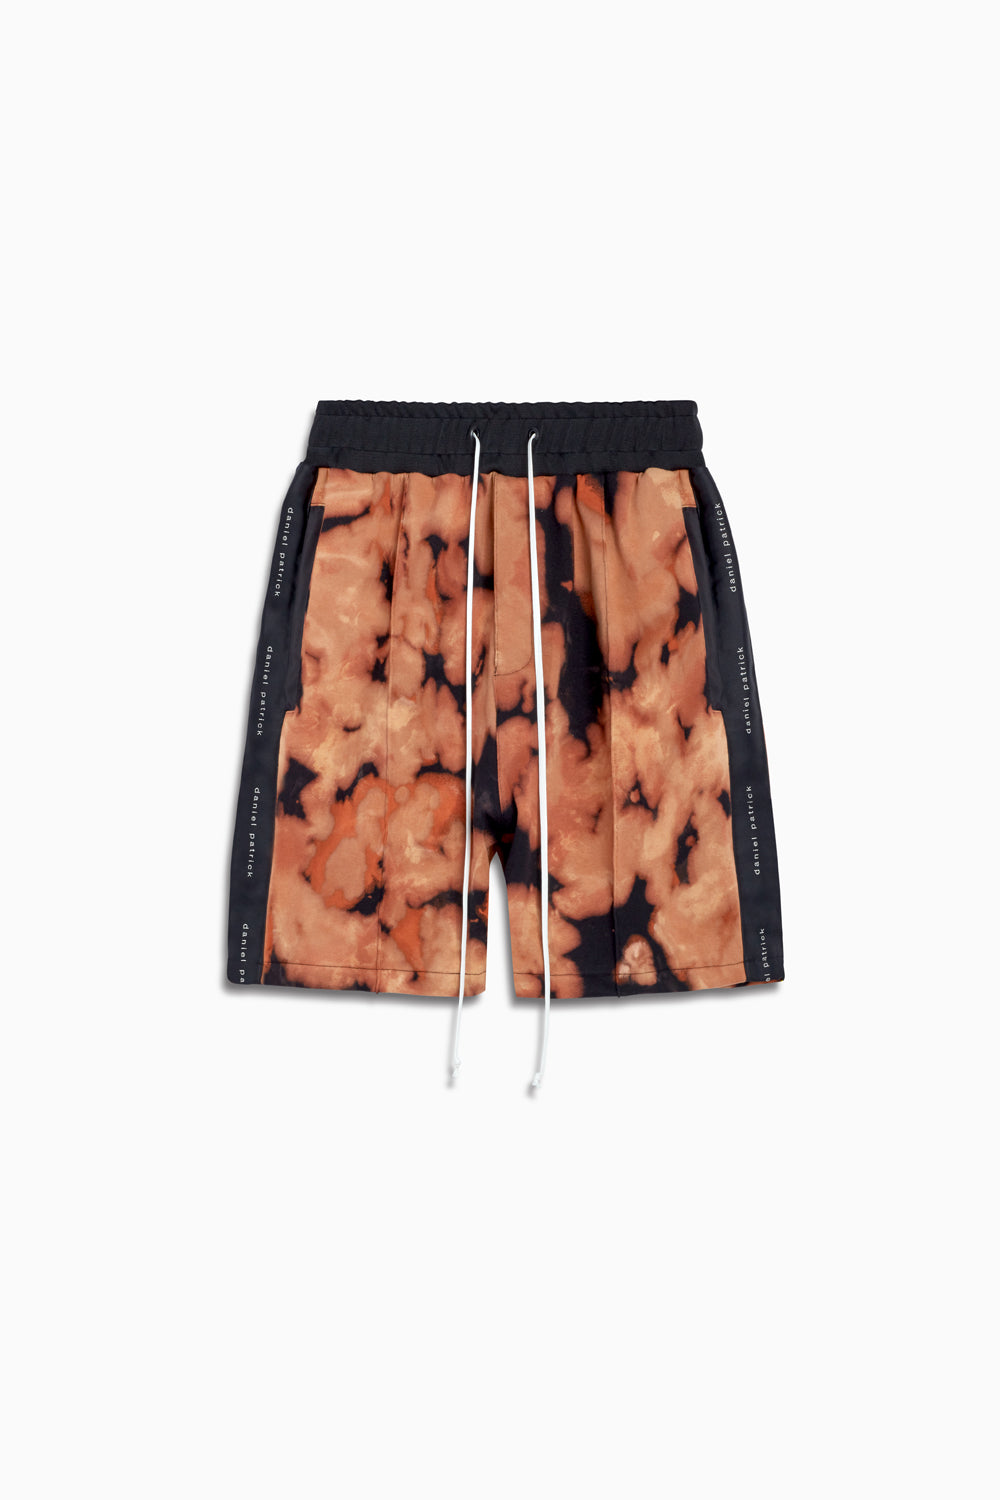 fleece gym short ii in orange acid/black by daniel patrick